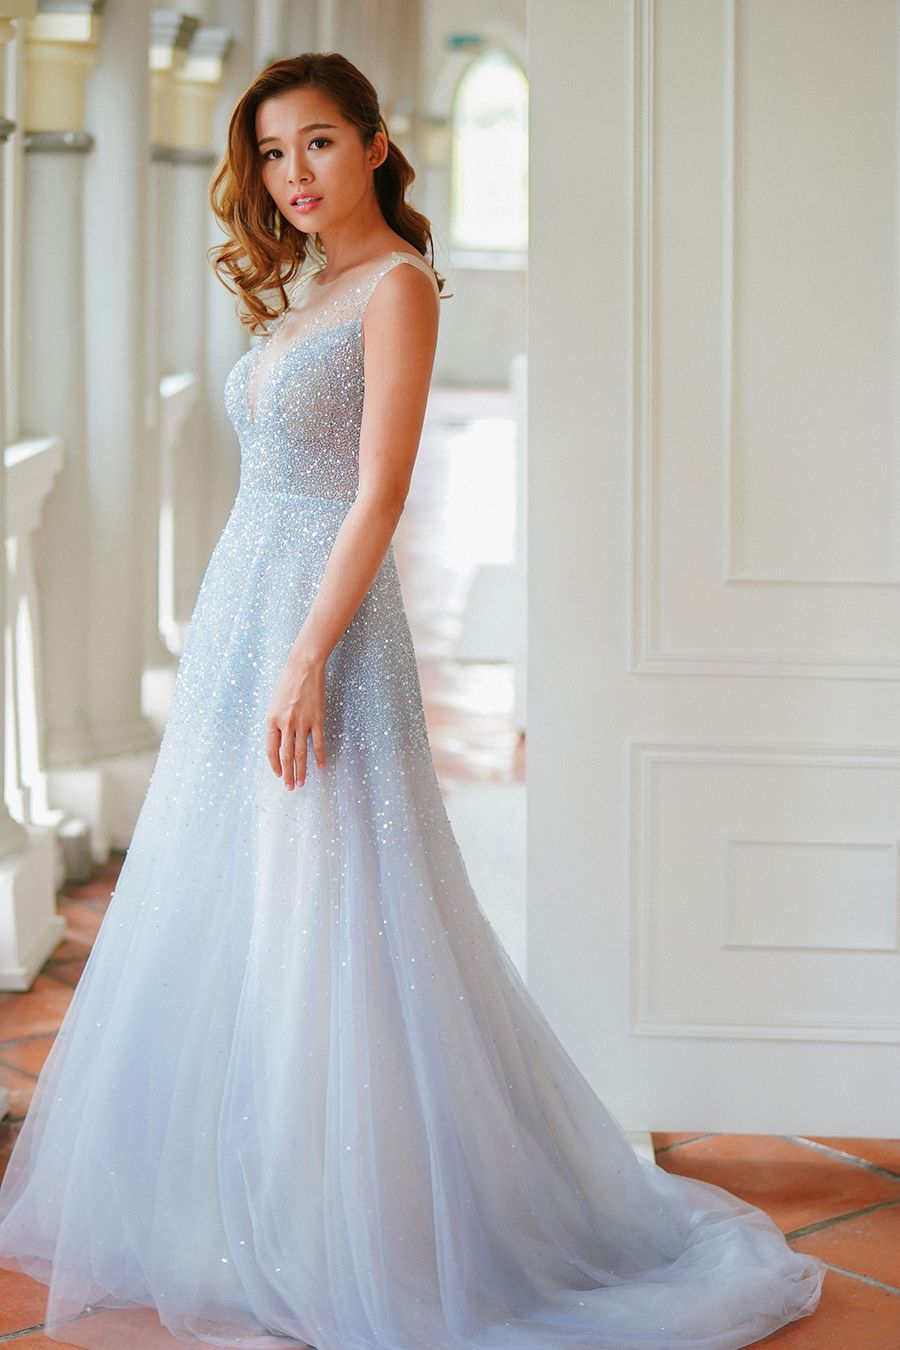 Celestial Themed Styled Wedding Shoot Our Love Is Written In The Stars Disney Wedding Dresses Light Blue Wedding Dress Wedding Dresses [ 1350 x 900 Pixel ]